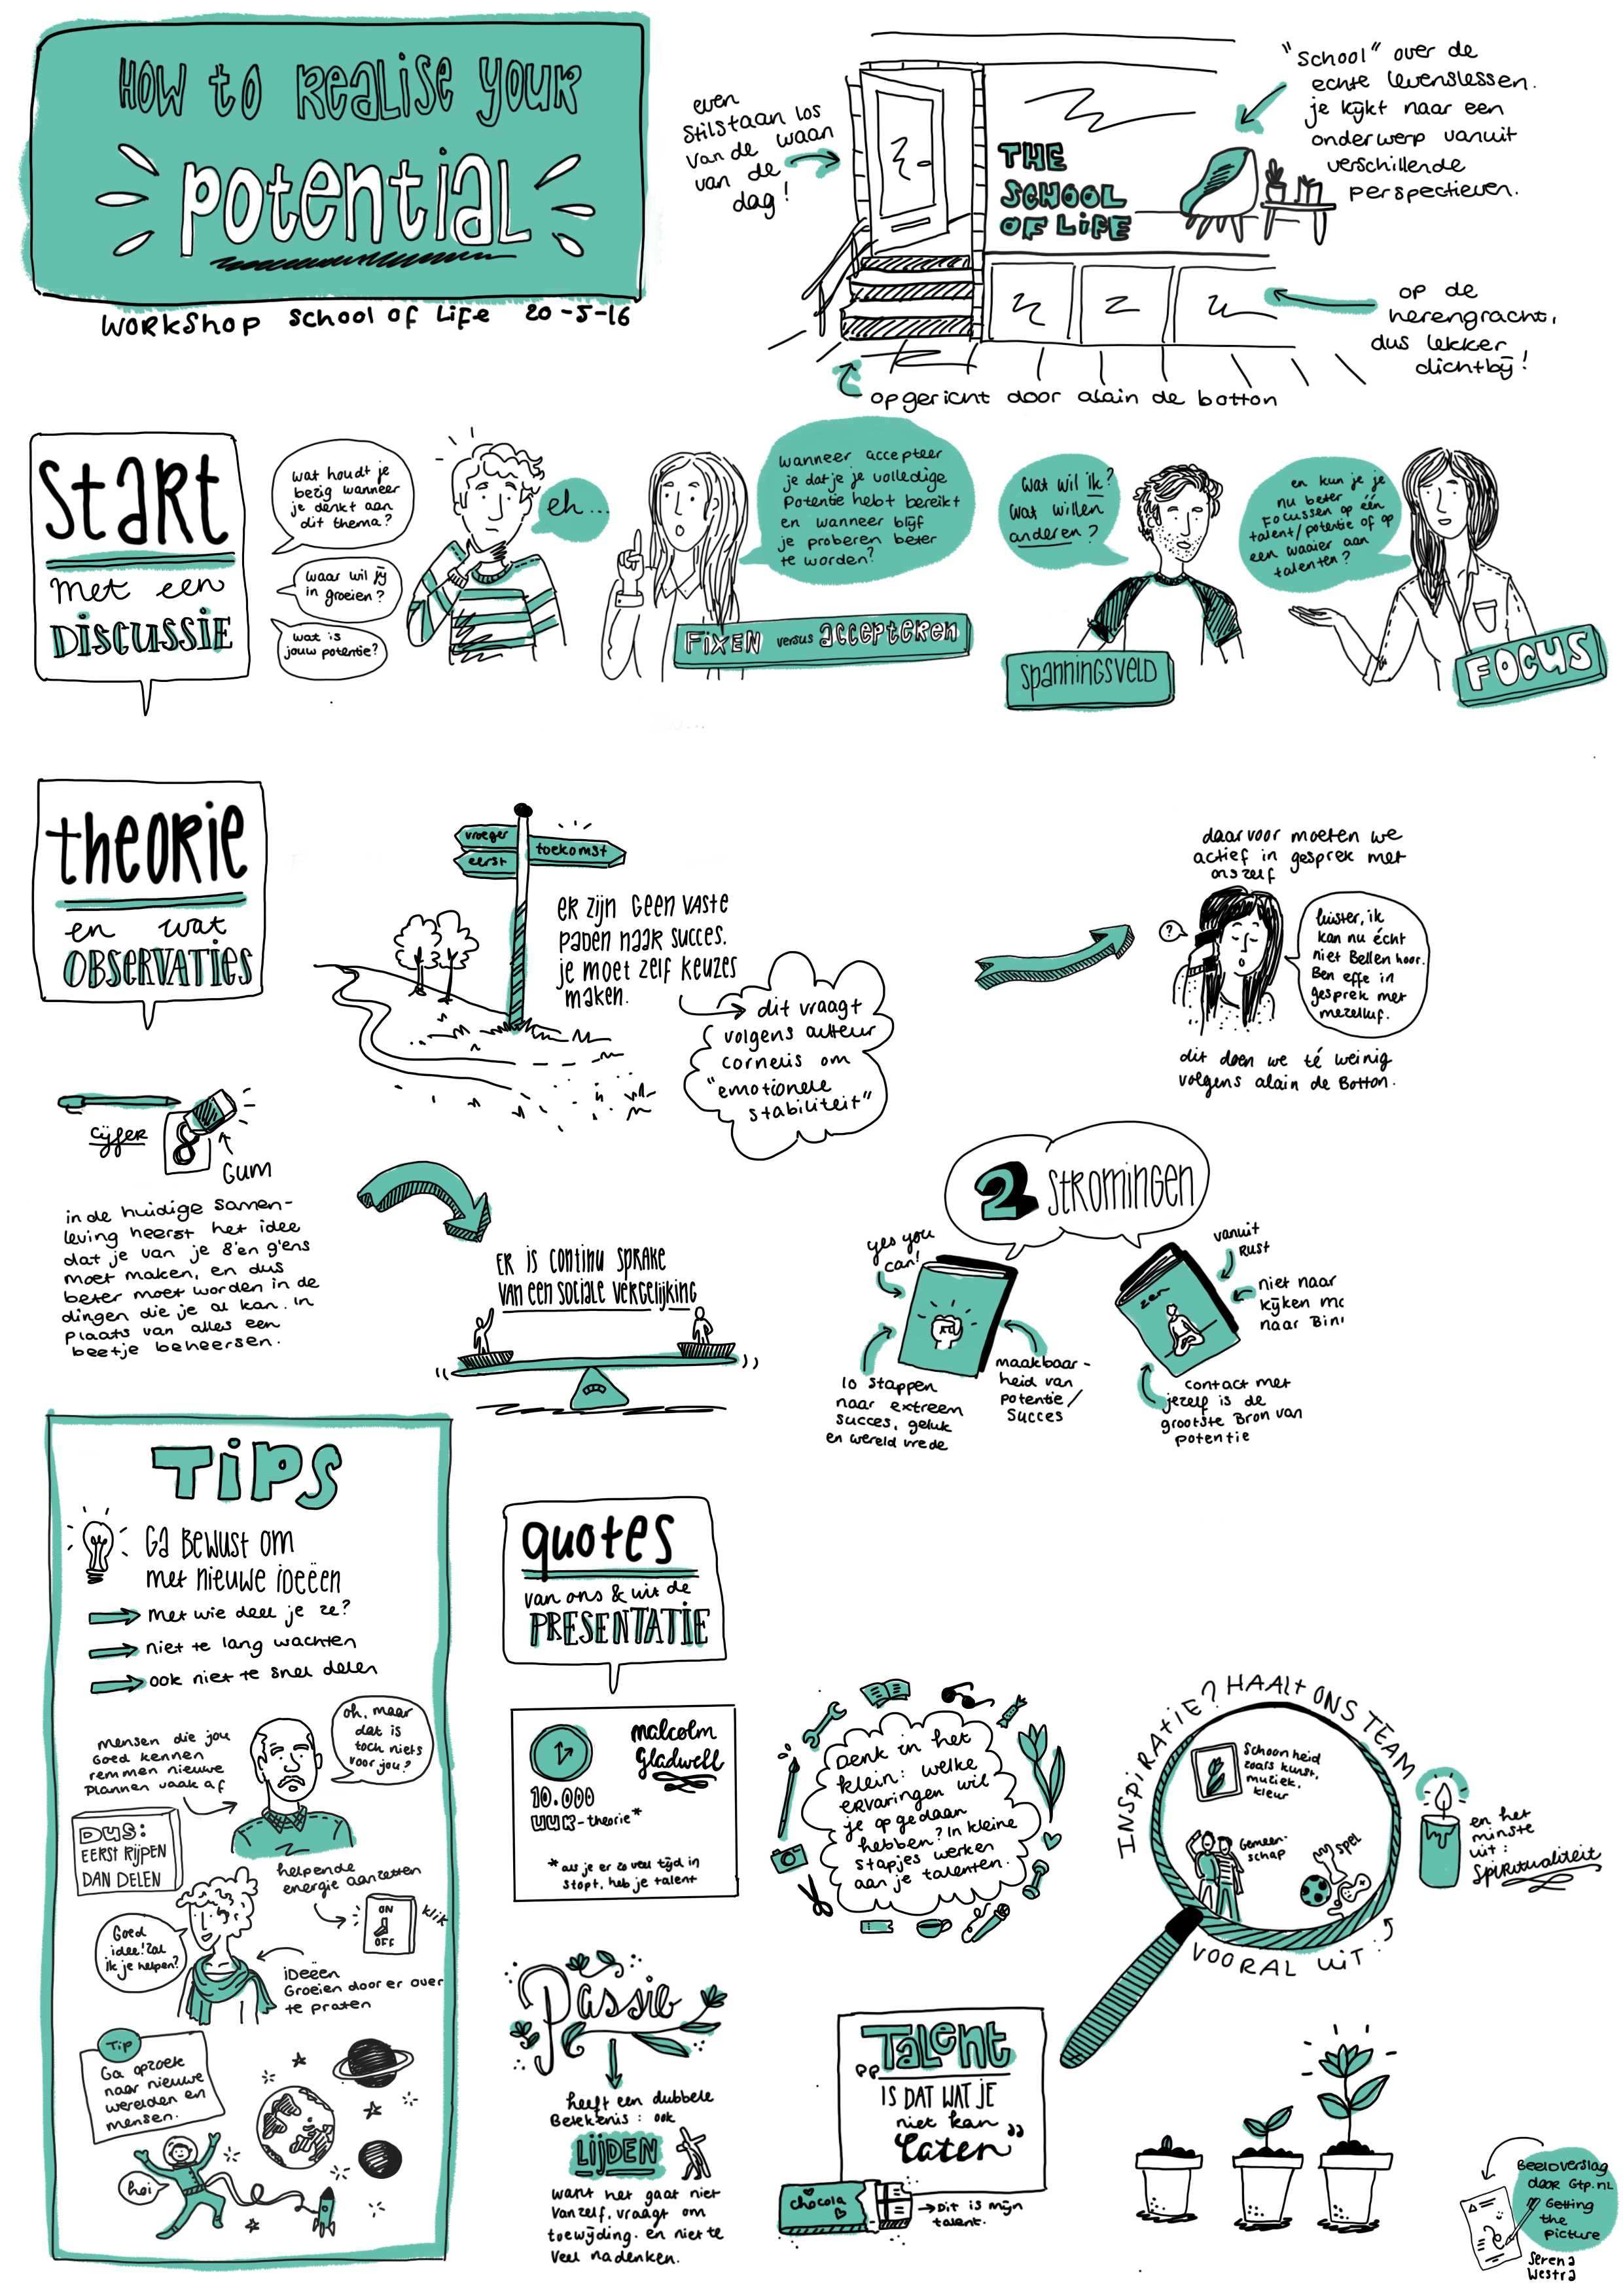 Beeldverslag visual notes live tekenen - How to realise your potential